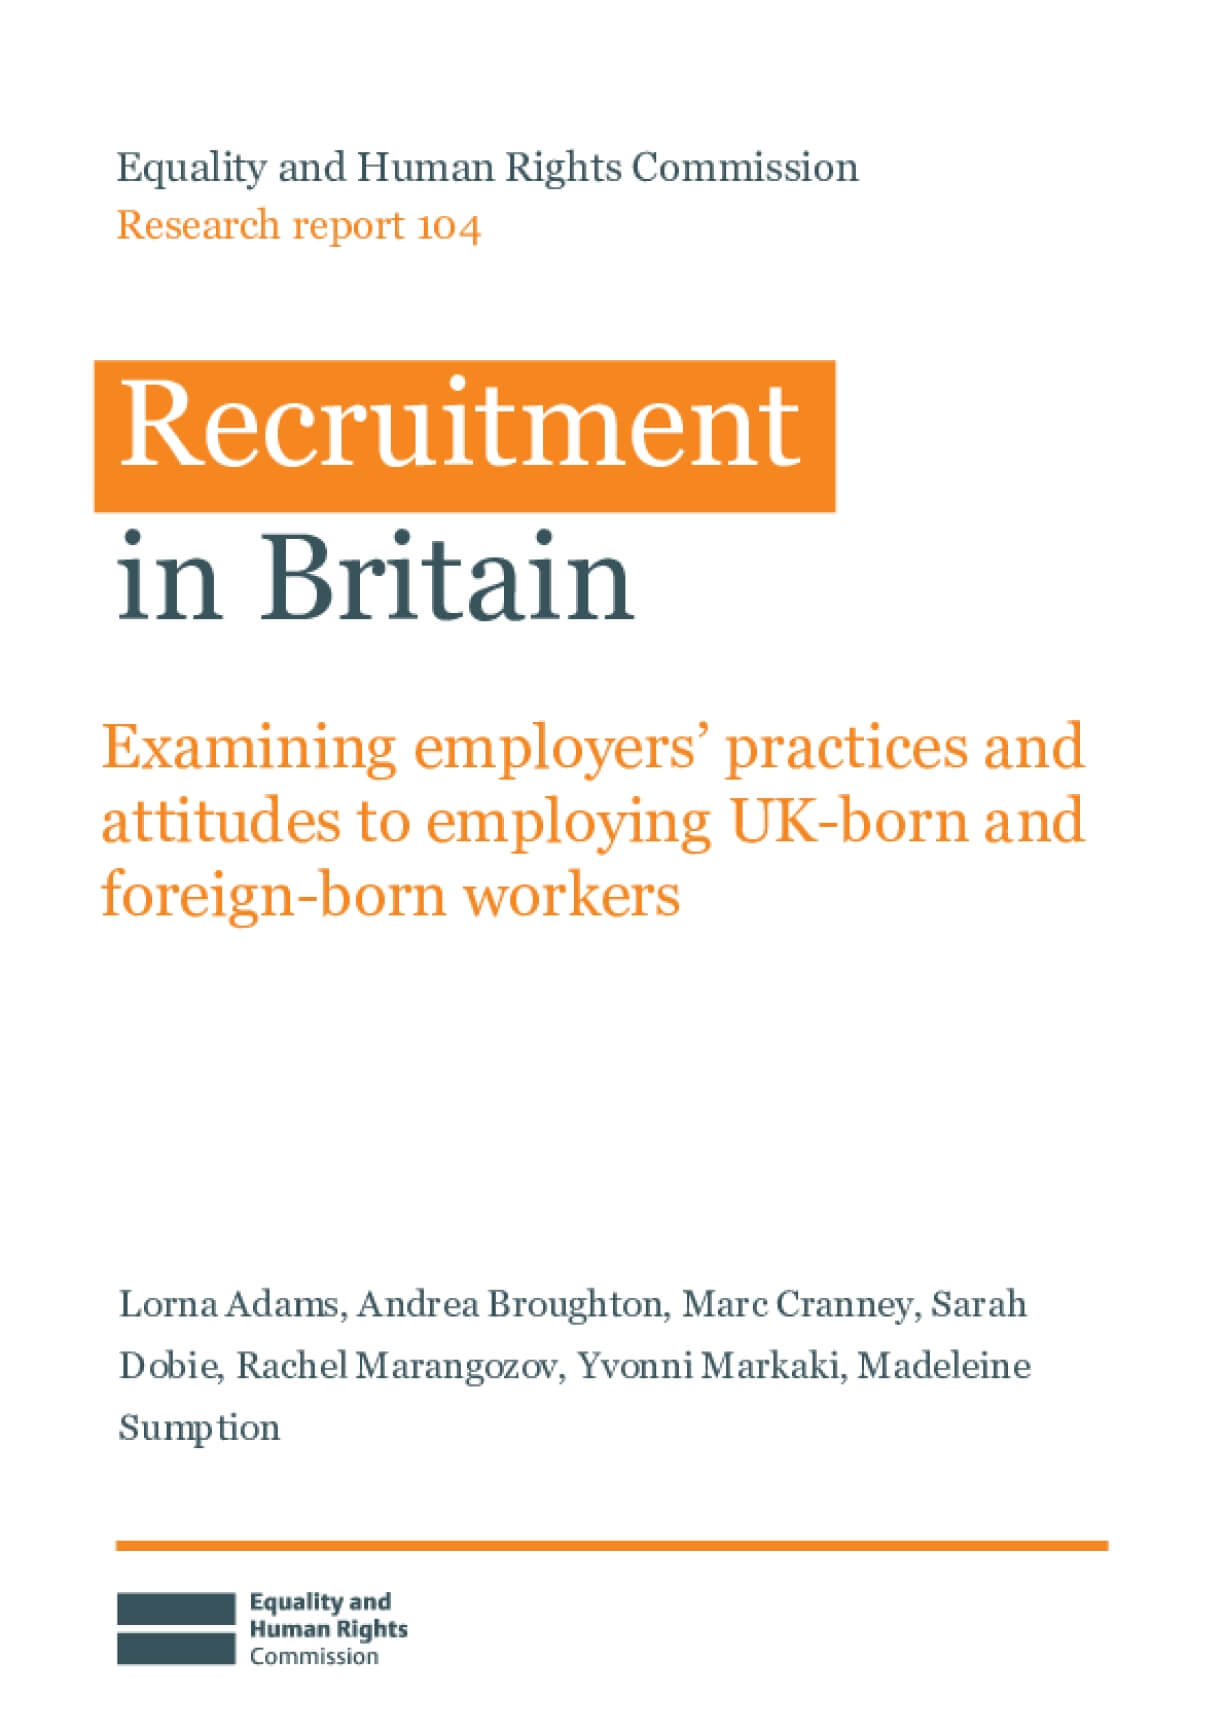 Recruitment in Britain: Examining employers' practices and attitudes to employing UK-born and foreign-born workers